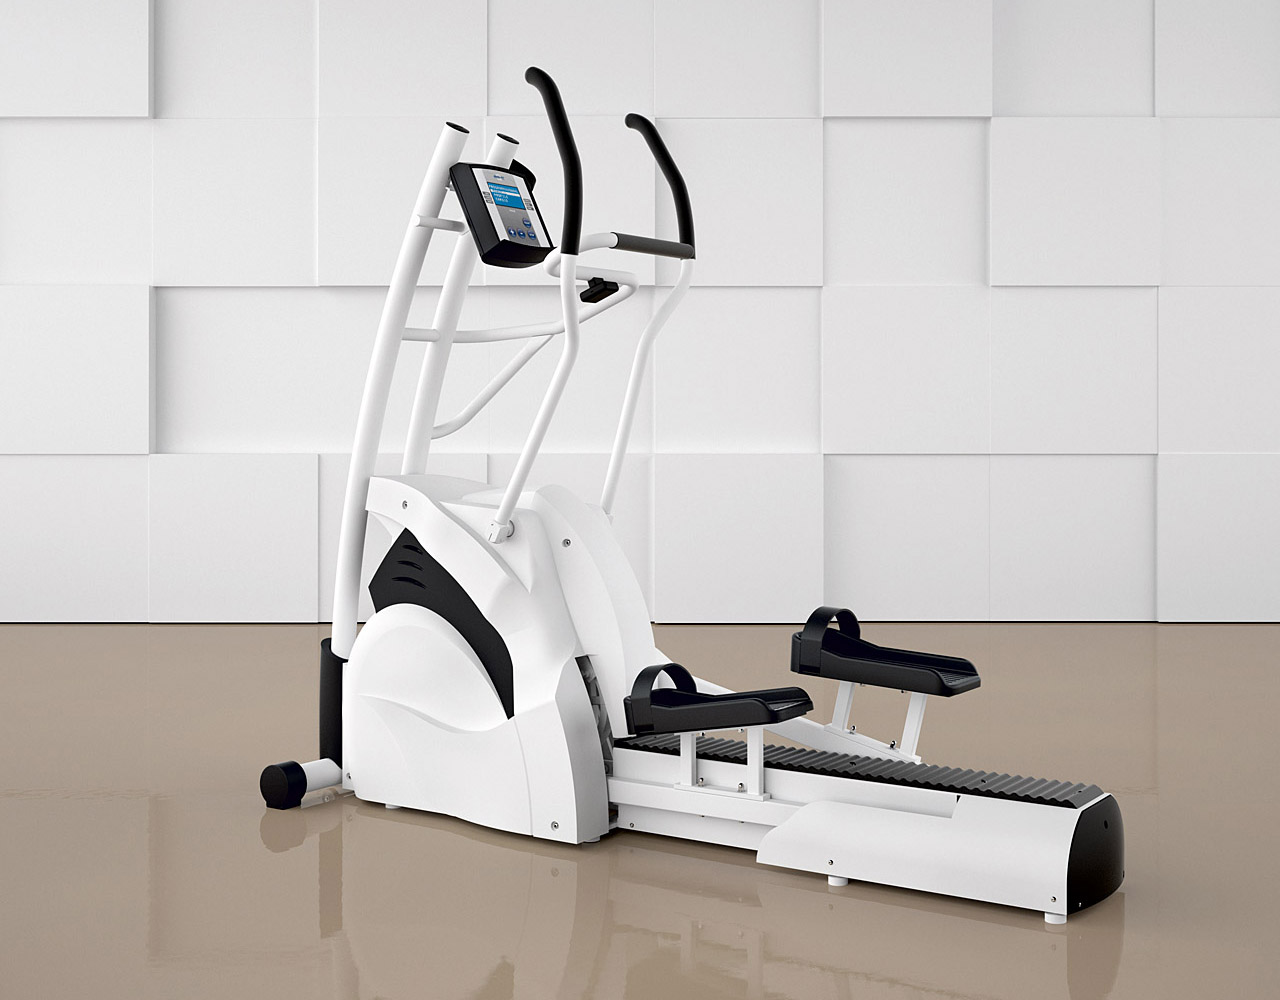 ERGO-FIT Crosstrainer 4007